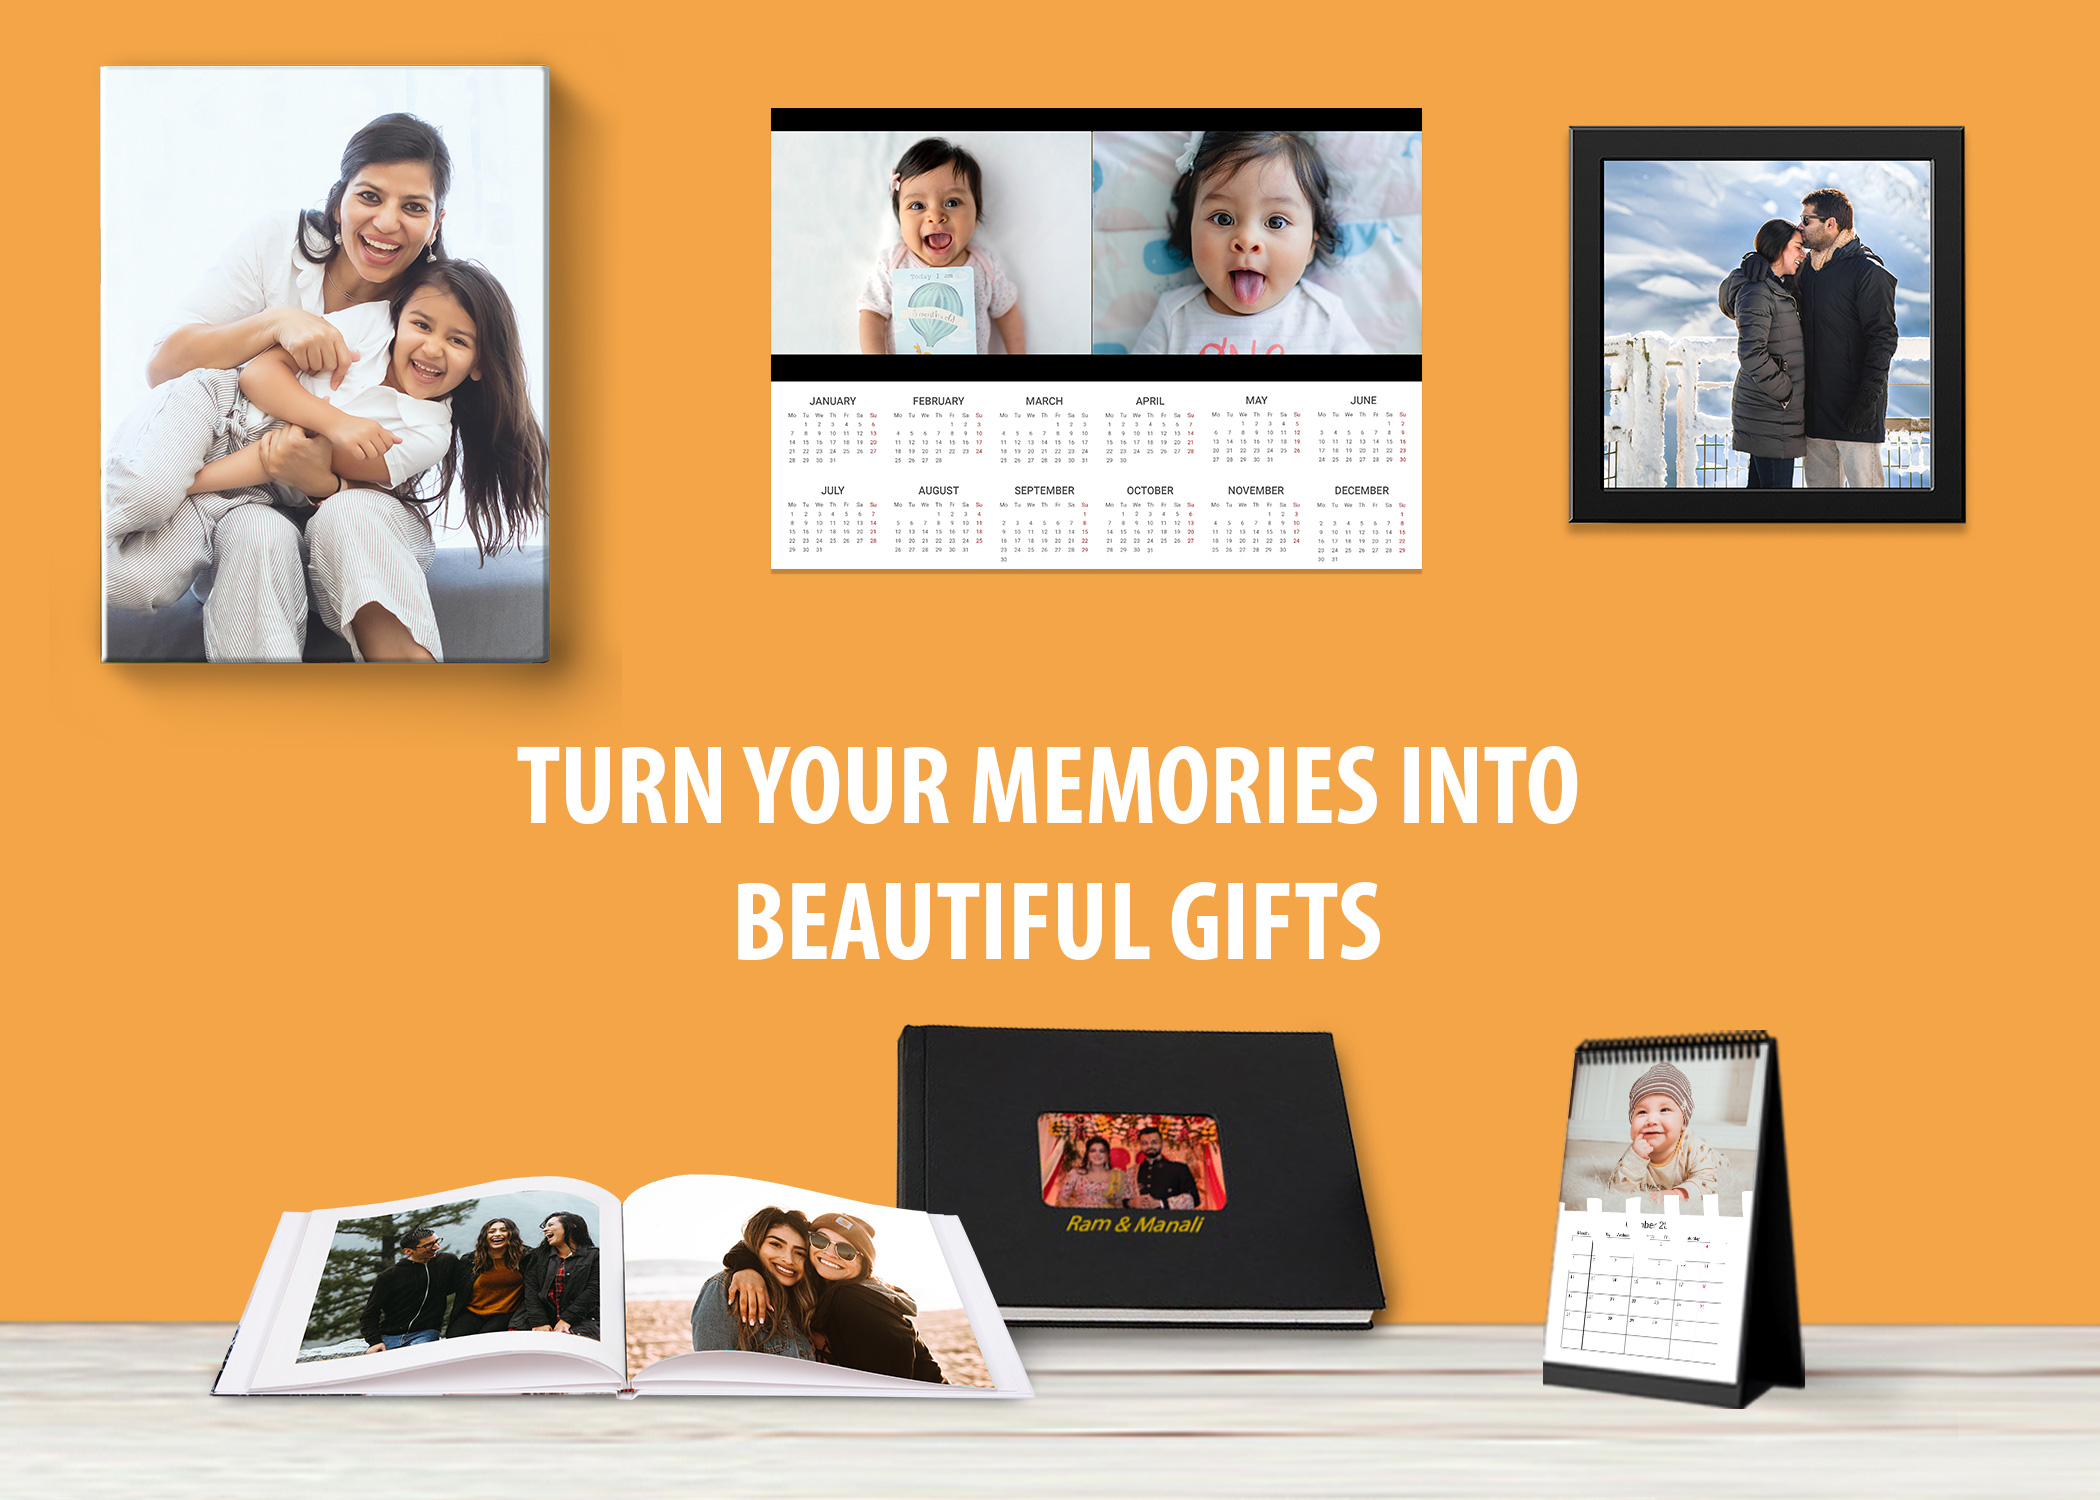 Best 5 Personalized Gifts For Photography Lovers! 1